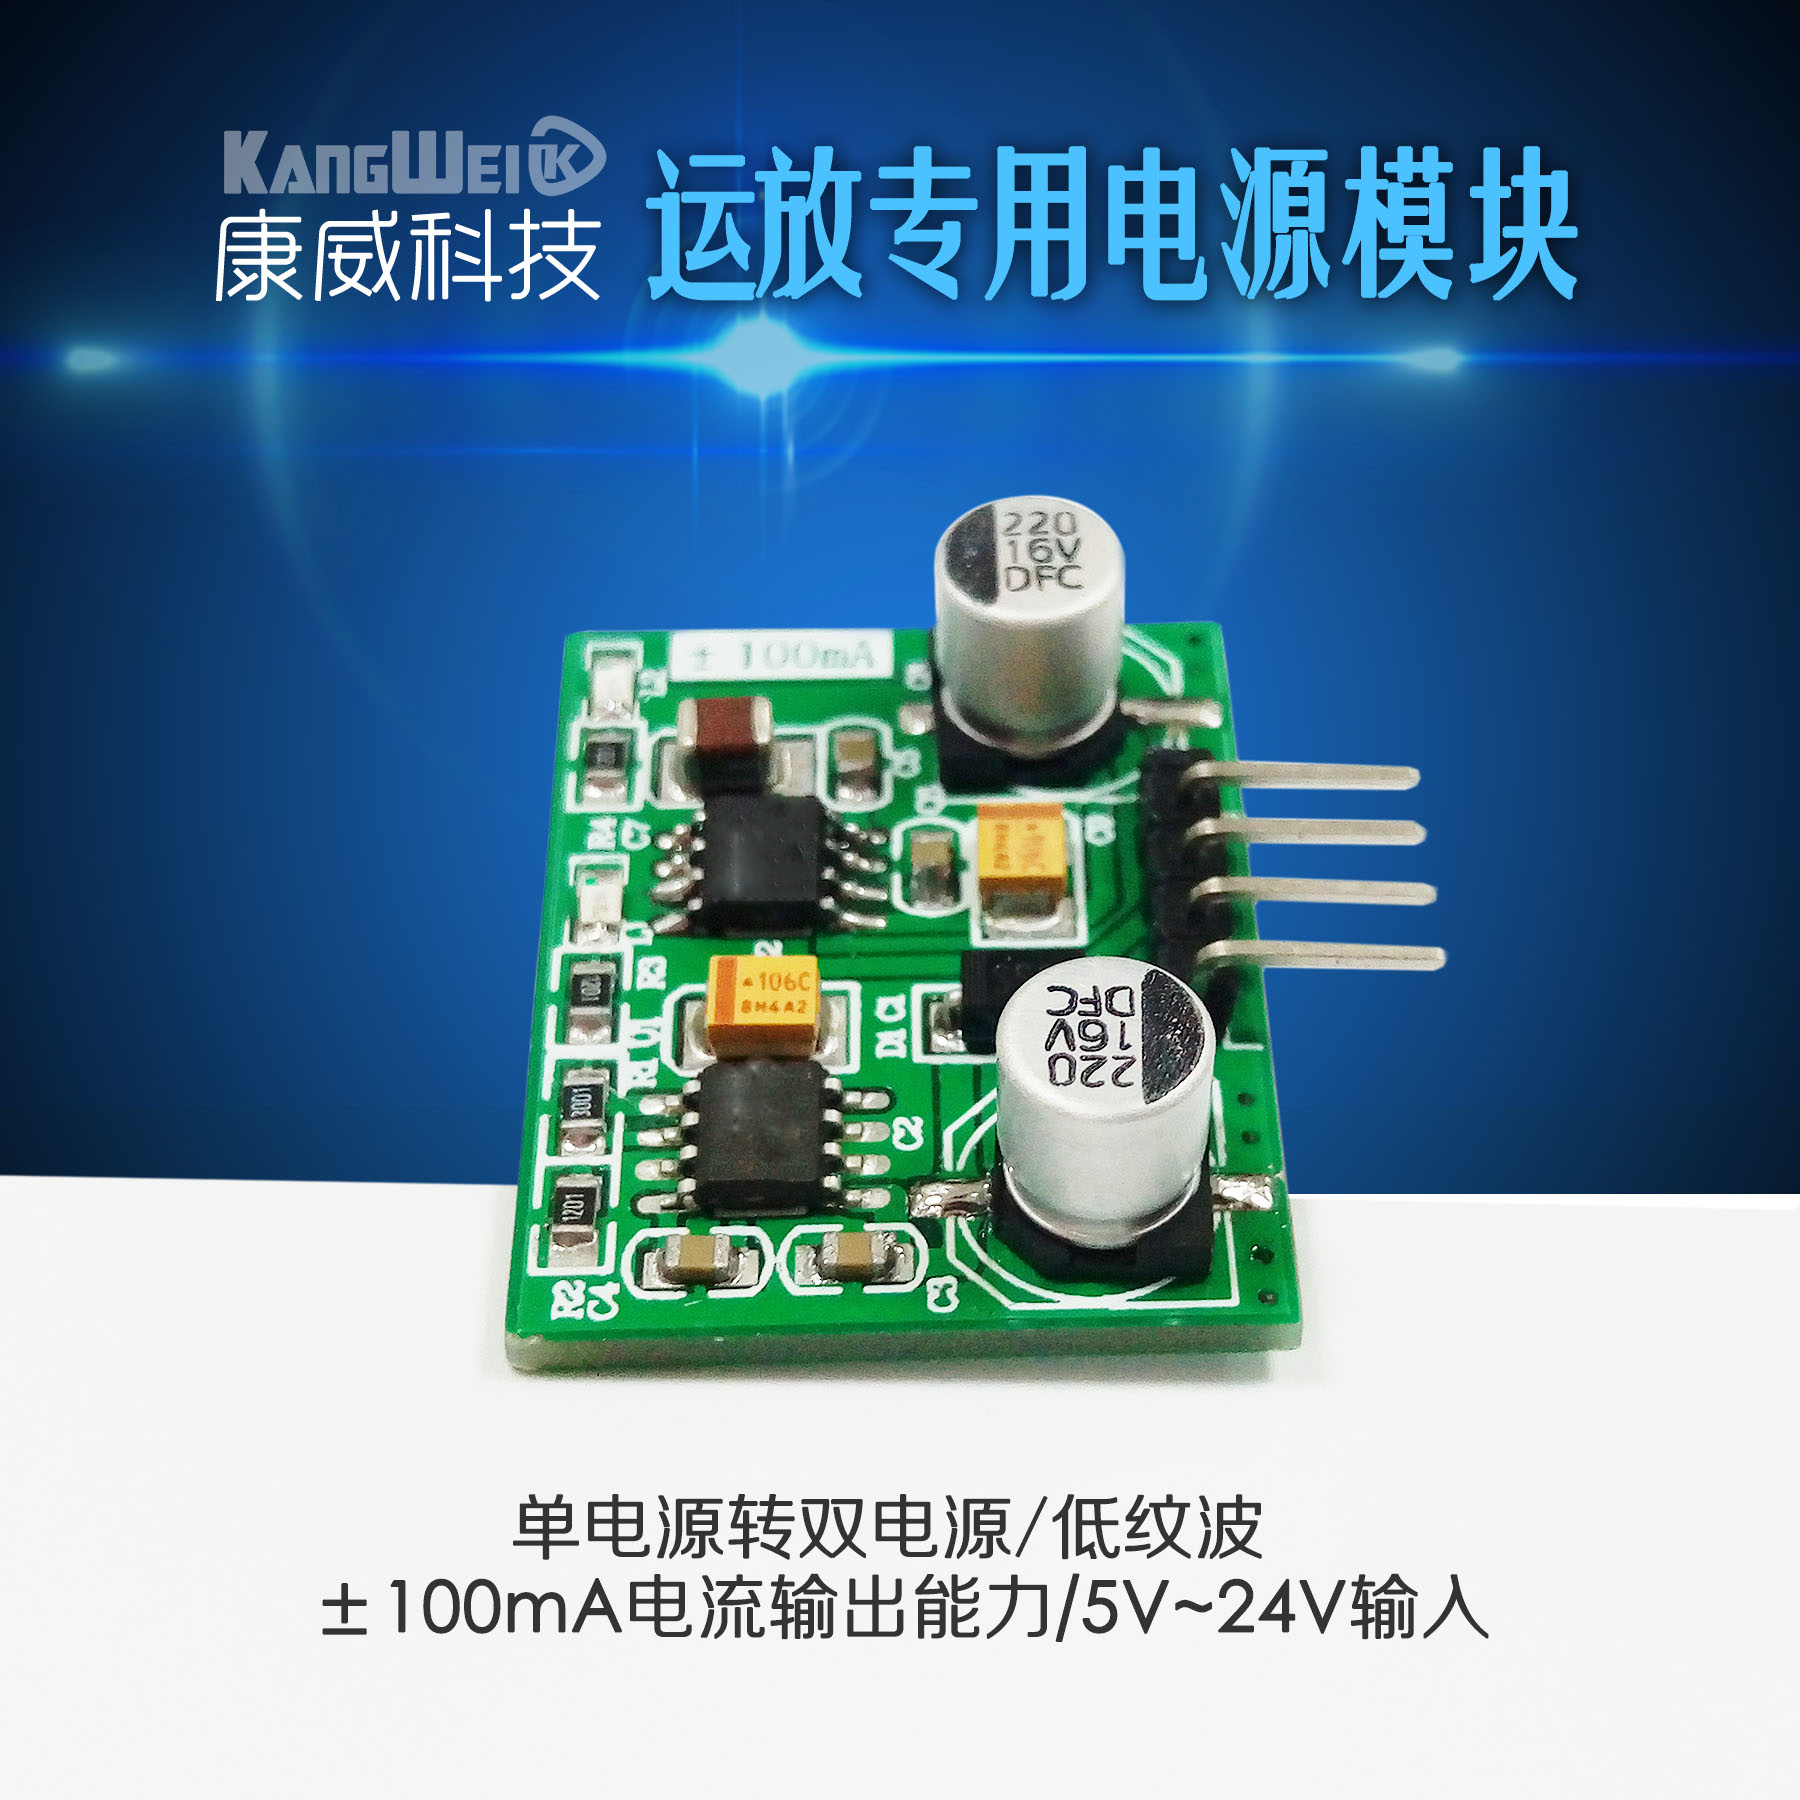 Special Power Amplifier Module, Single Power Double Power Supply, Low Ripple + 100mA Current Output Capability кресло качалка 1807 1 кожзам